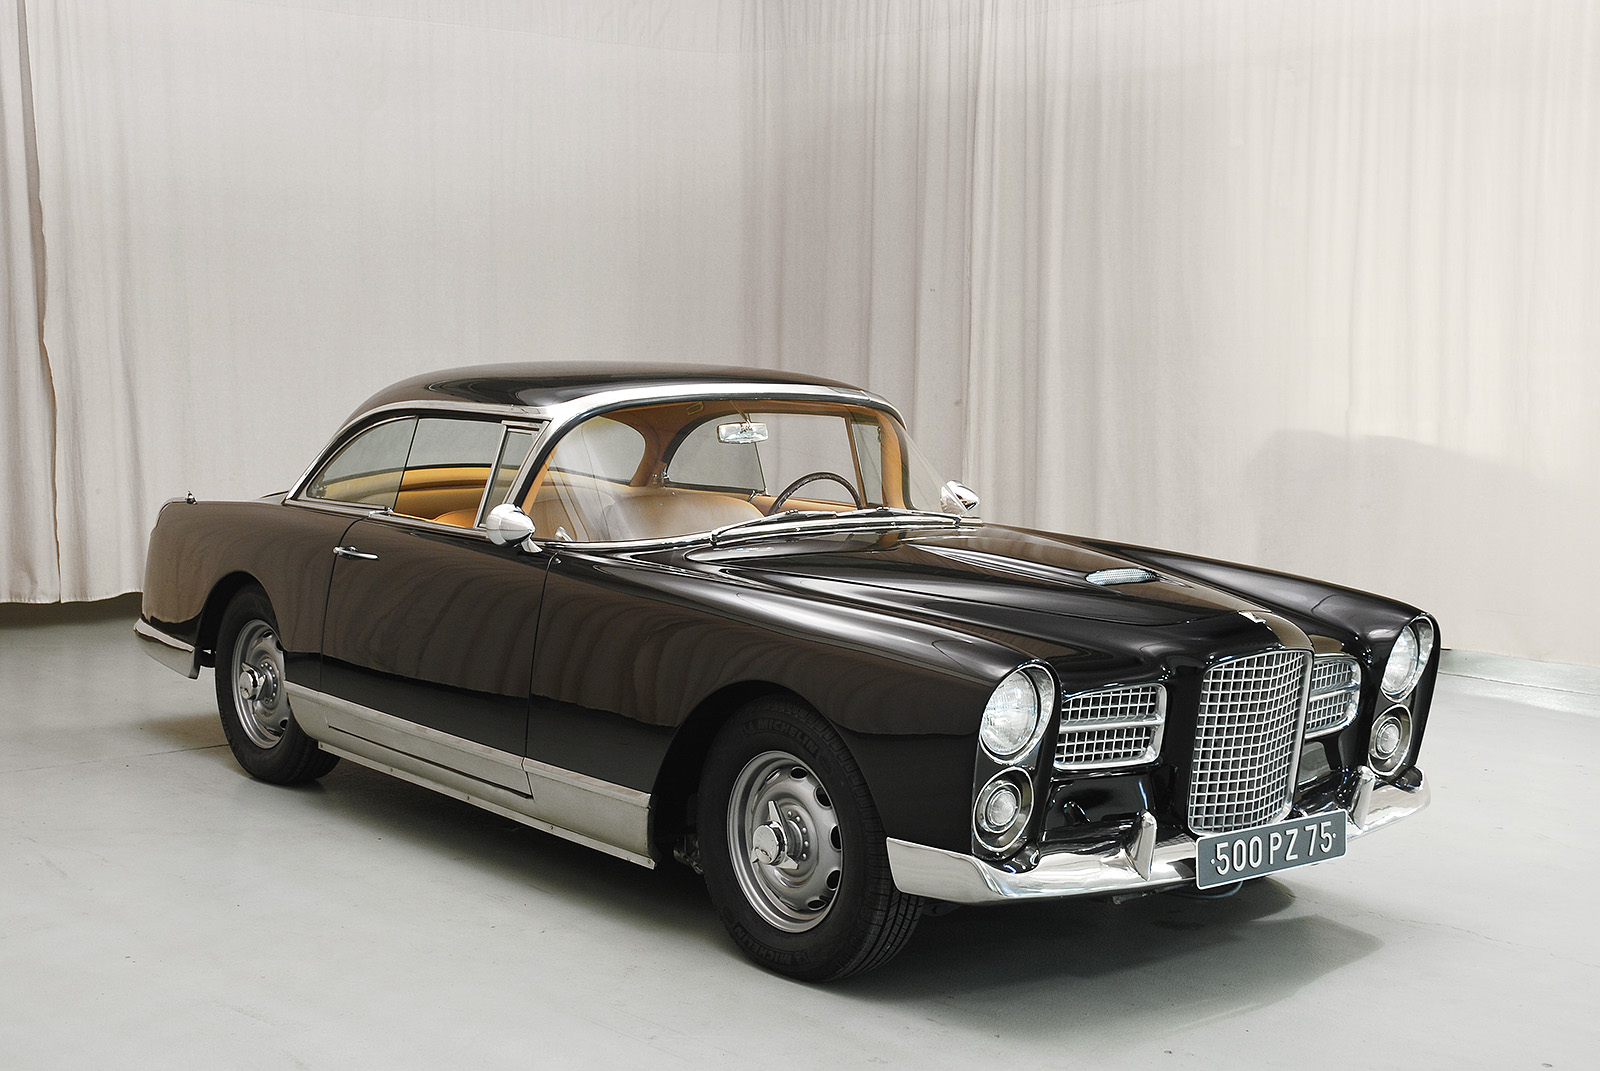 1961 facel vega hk 500 coupe hyman ltd classic cars. Black Bedroom Furniture Sets. Home Design Ideas